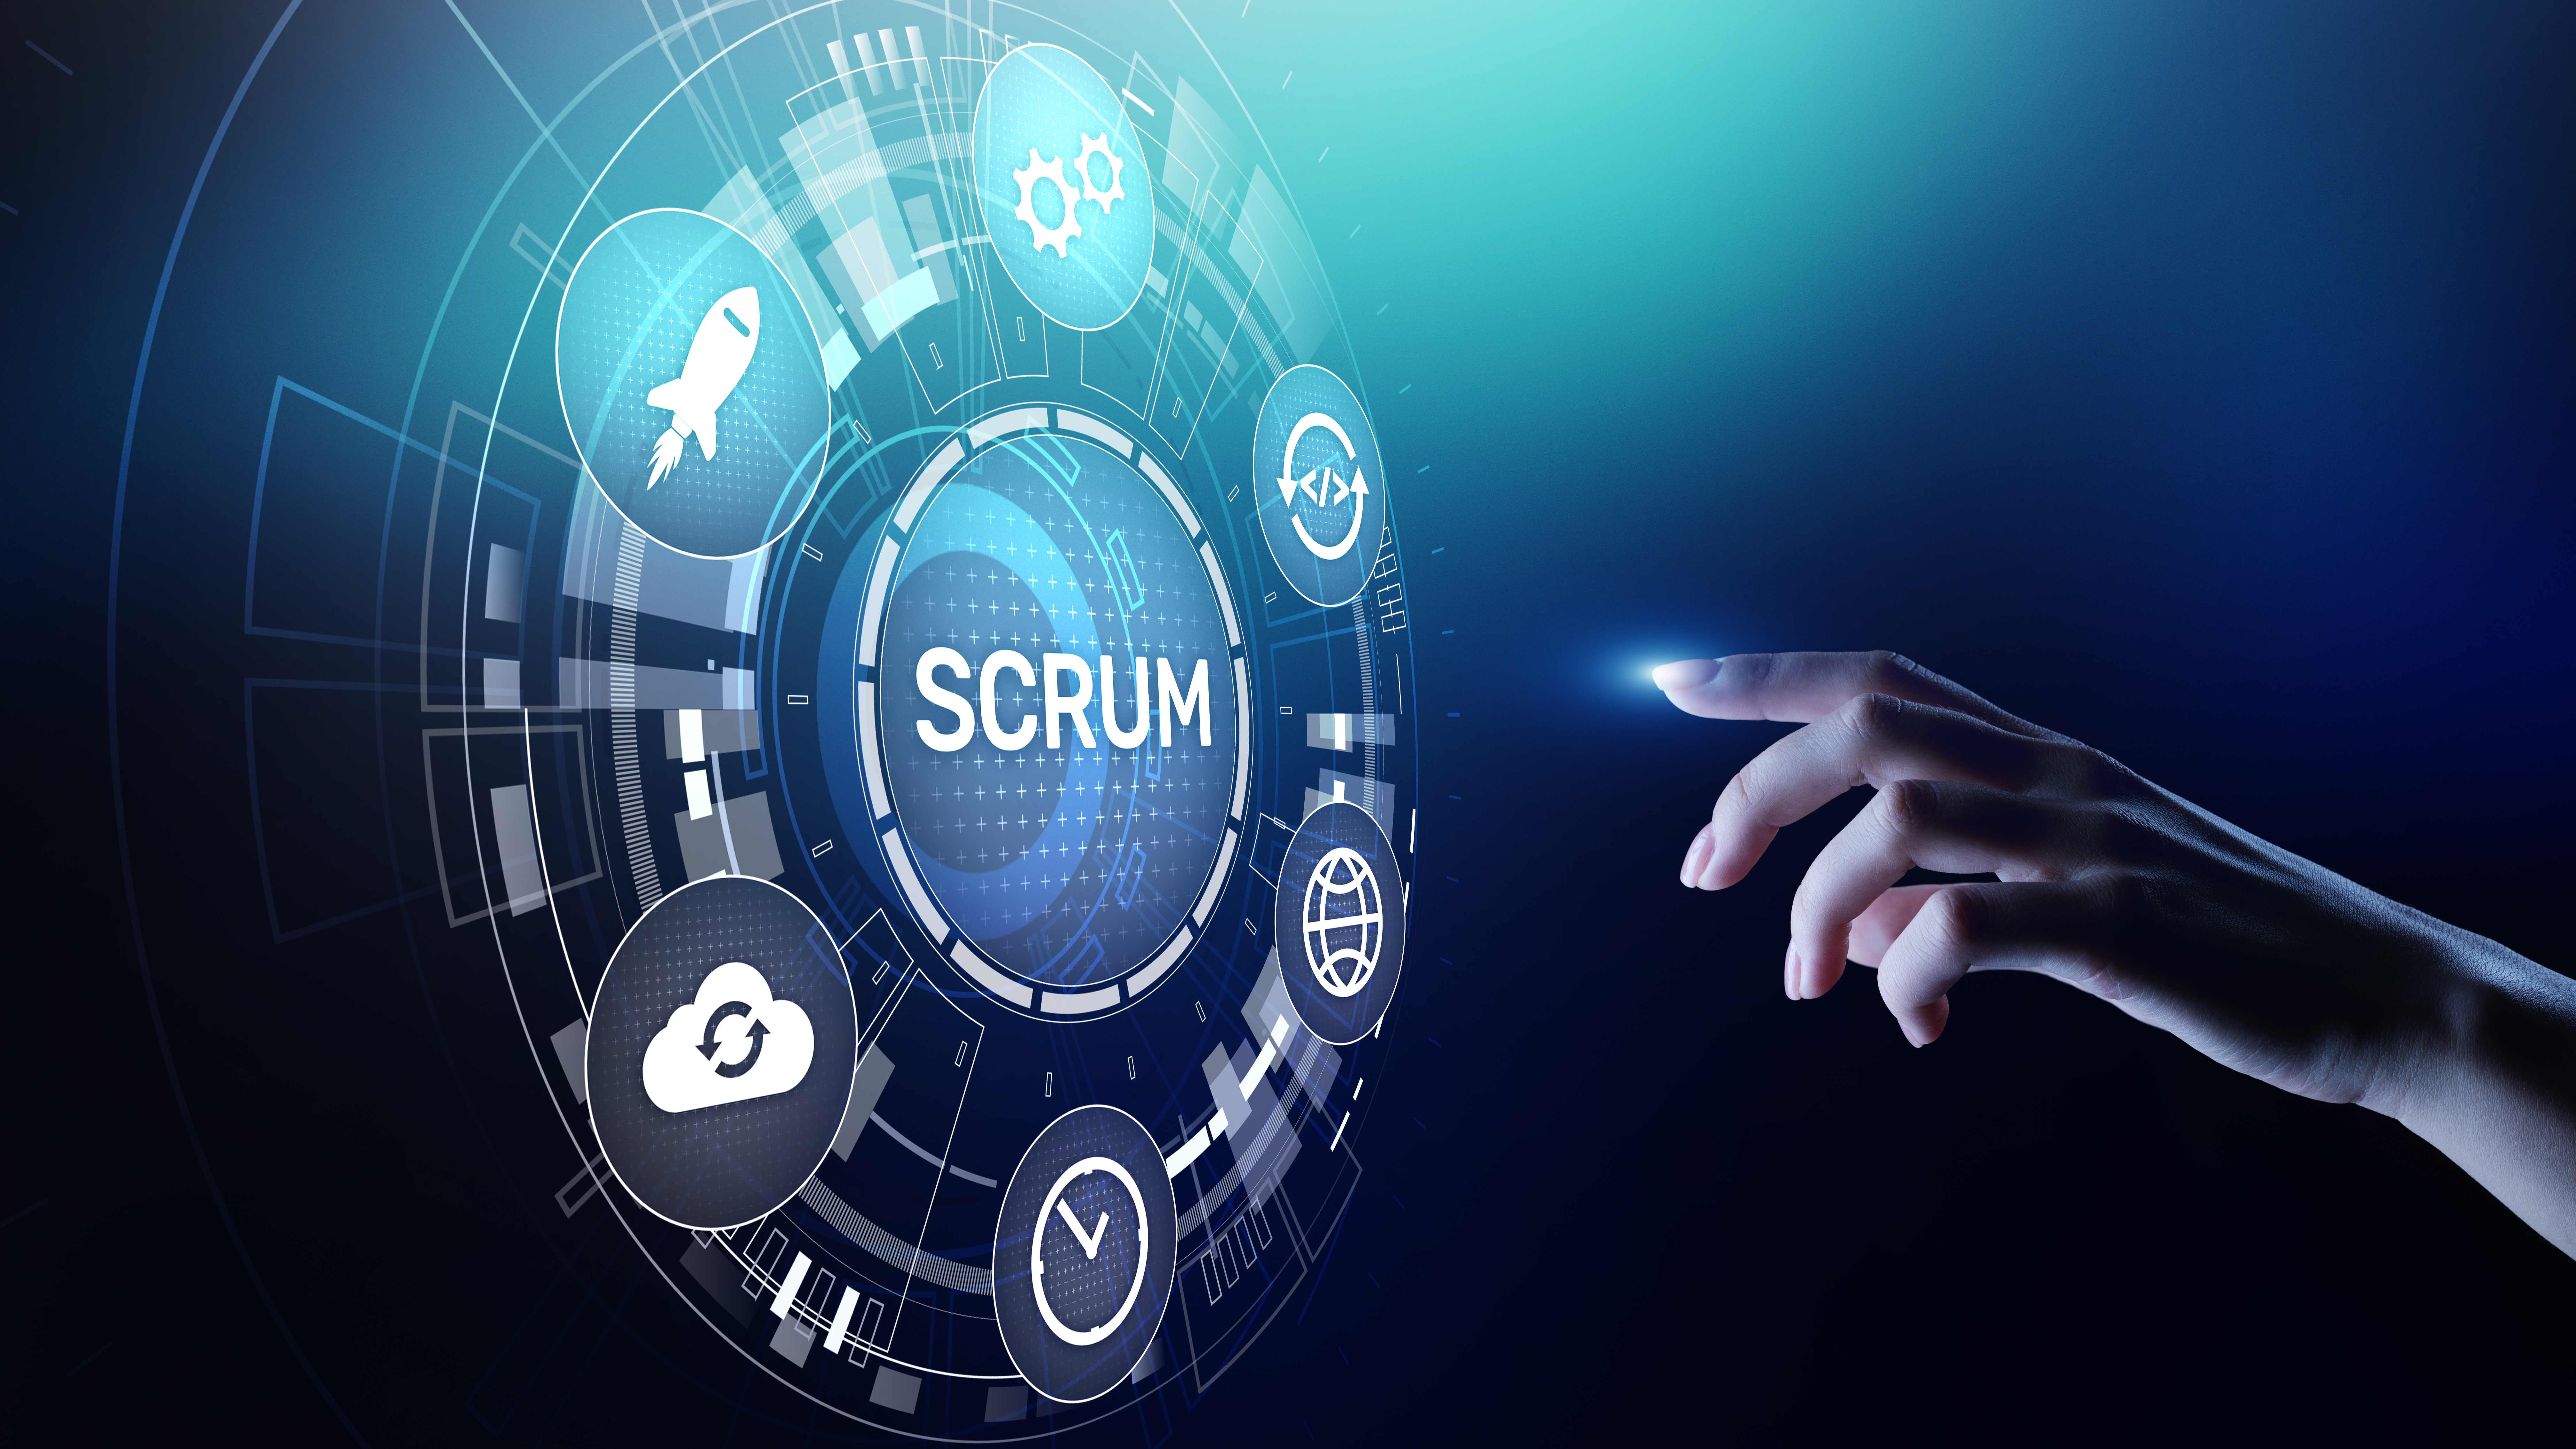 How do you feel about Scrum?